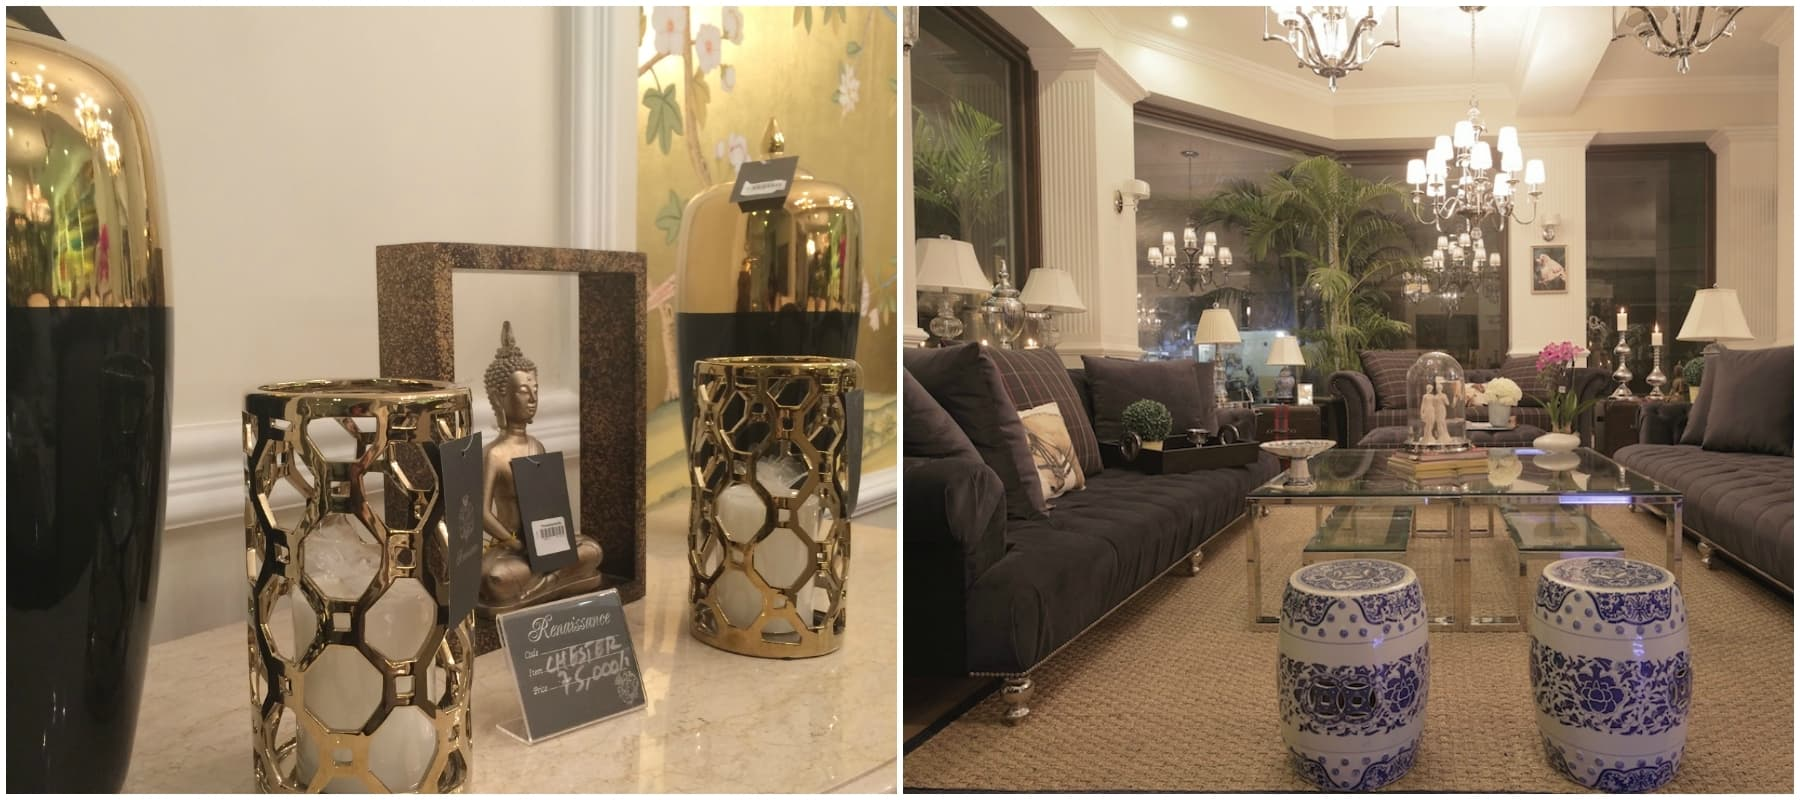 Top Picks For Home Decor These 10 Stores Get Interiors Right